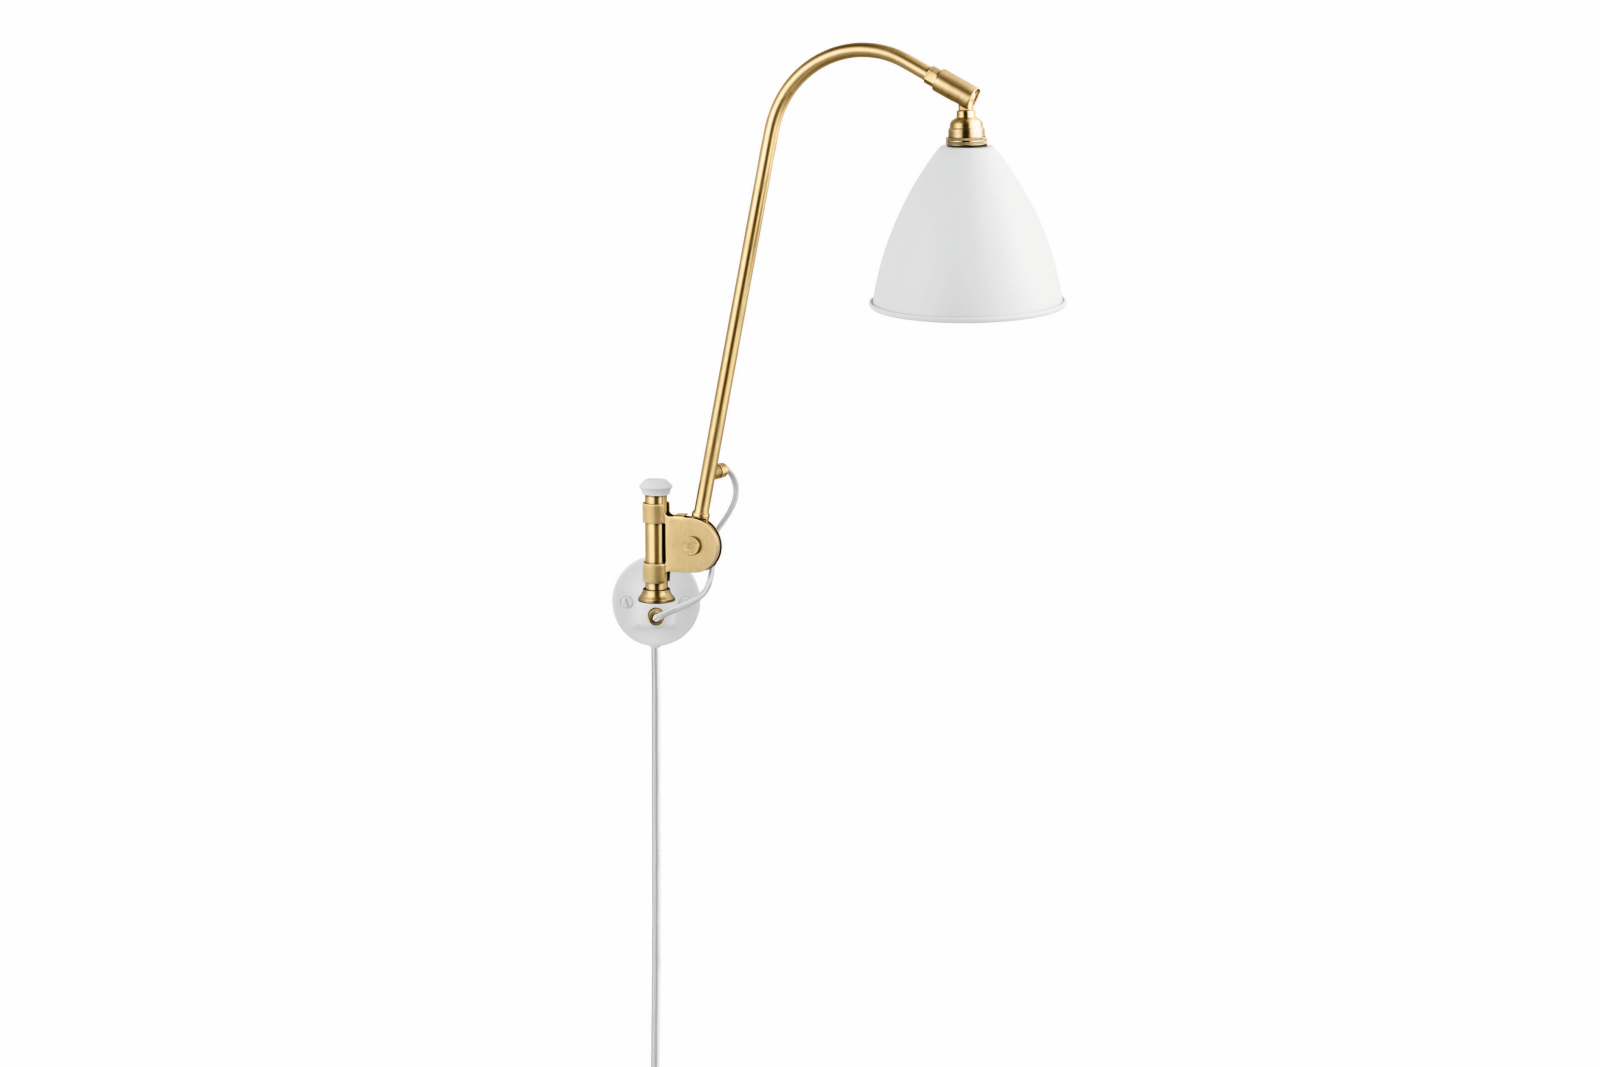 Bestlite BL6 Wired Wall Light Matt White and Brass